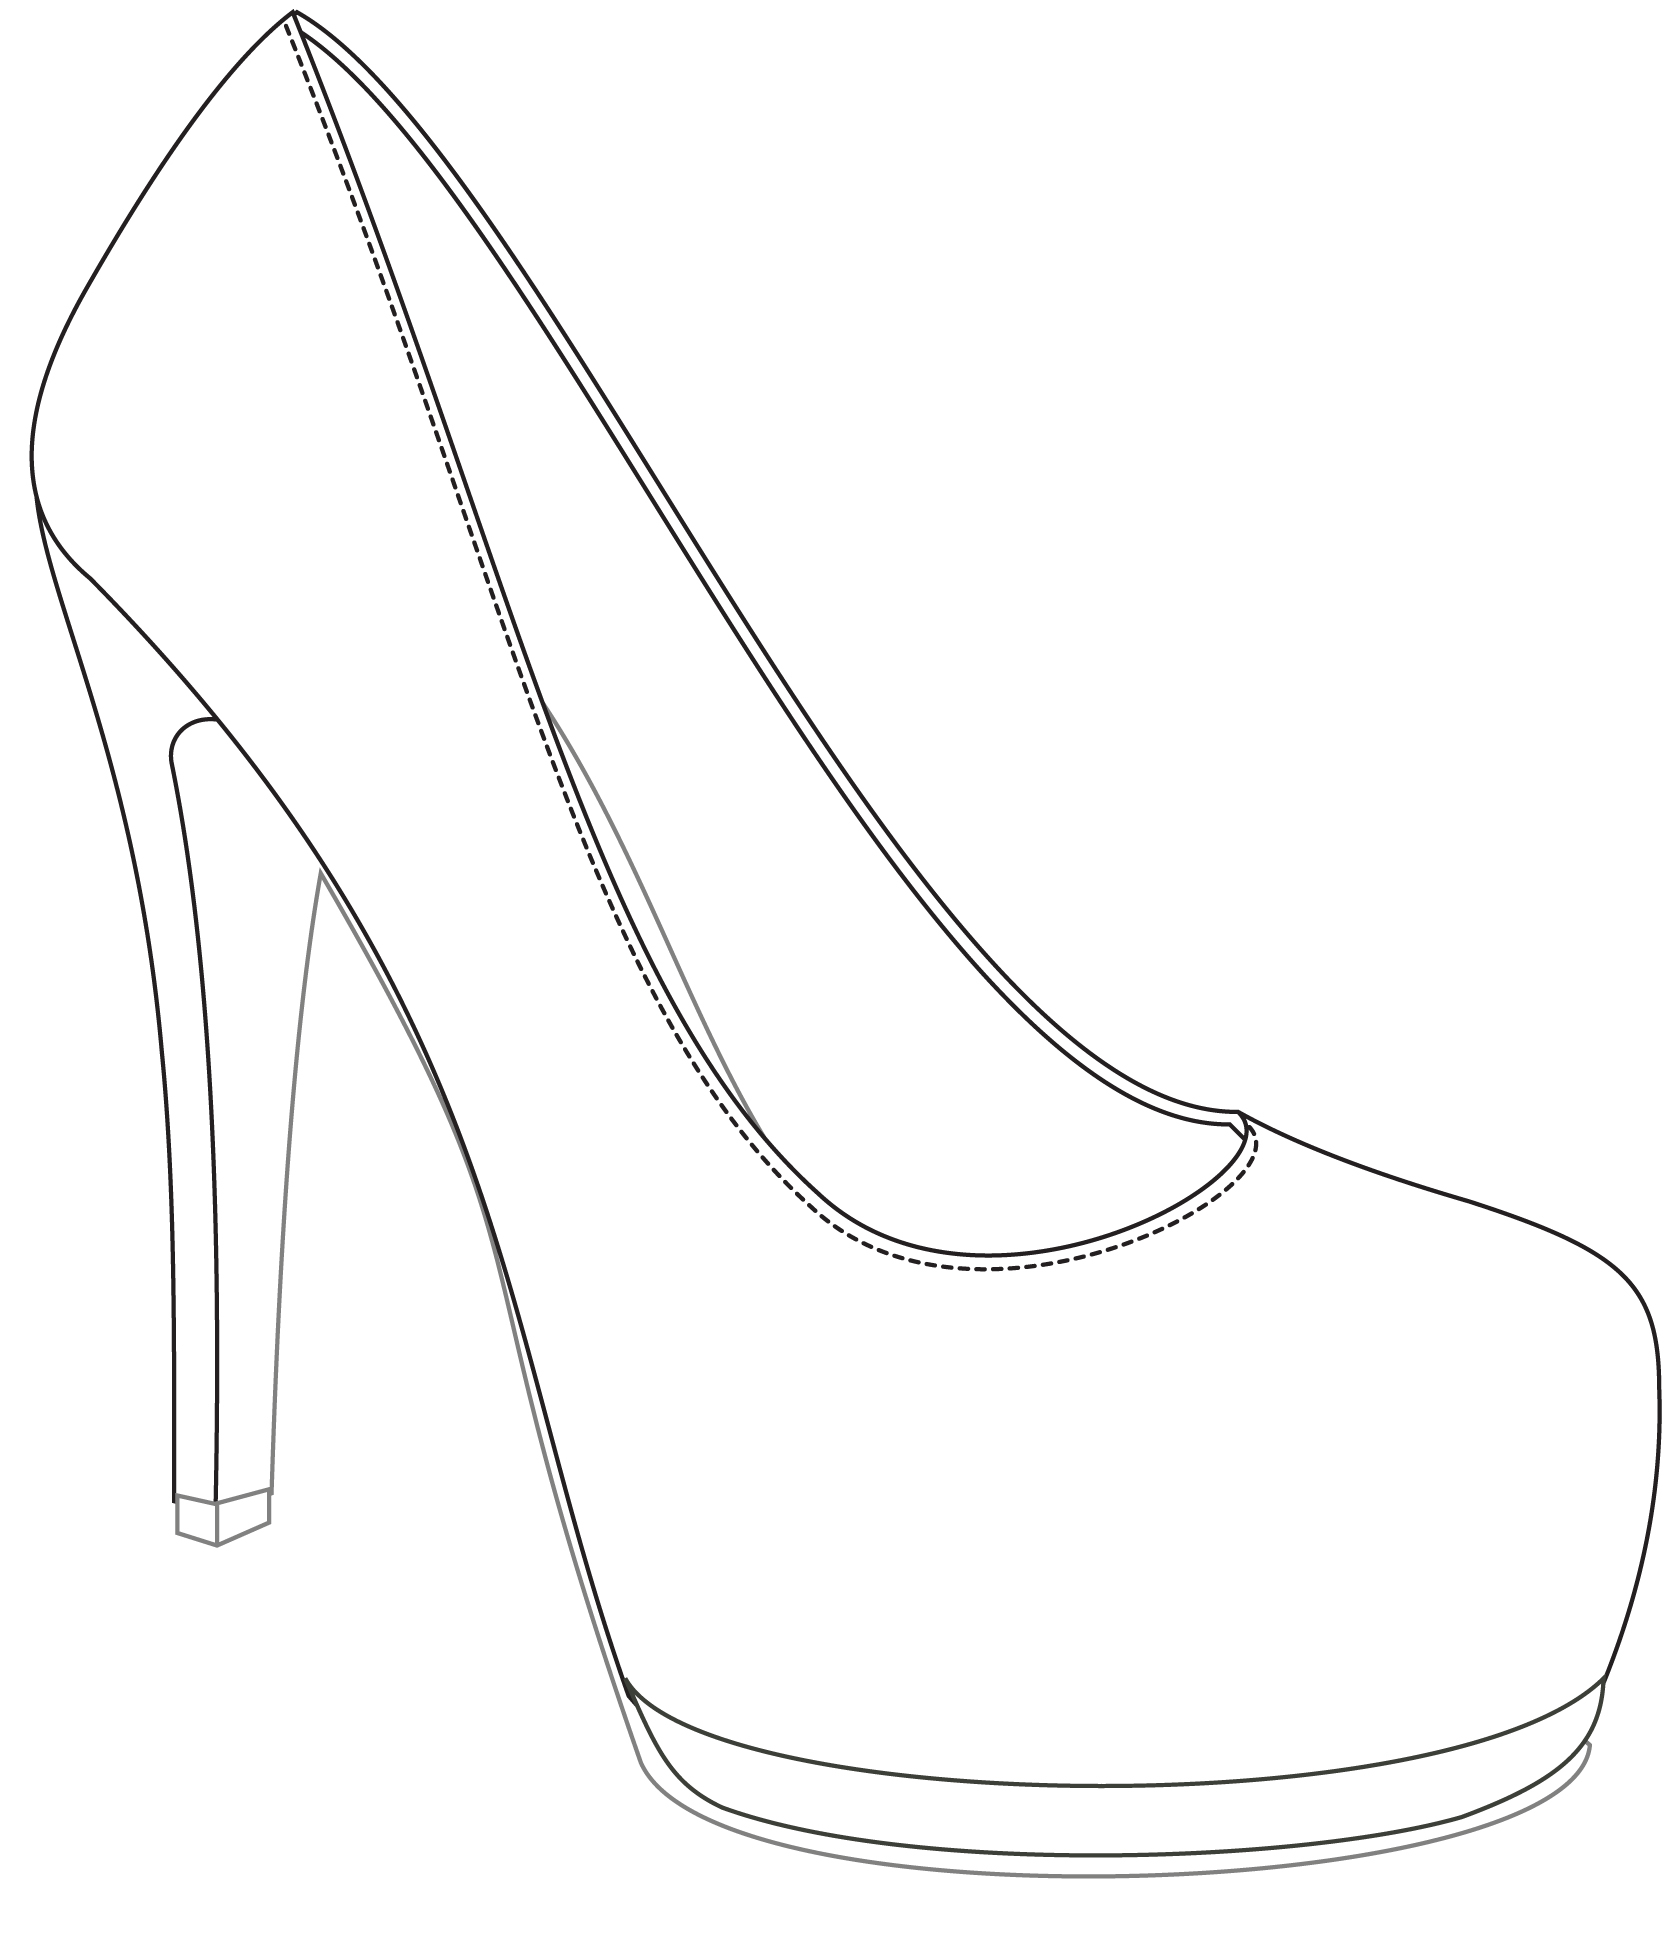 Shoe Outline Drawing At Getdrawings